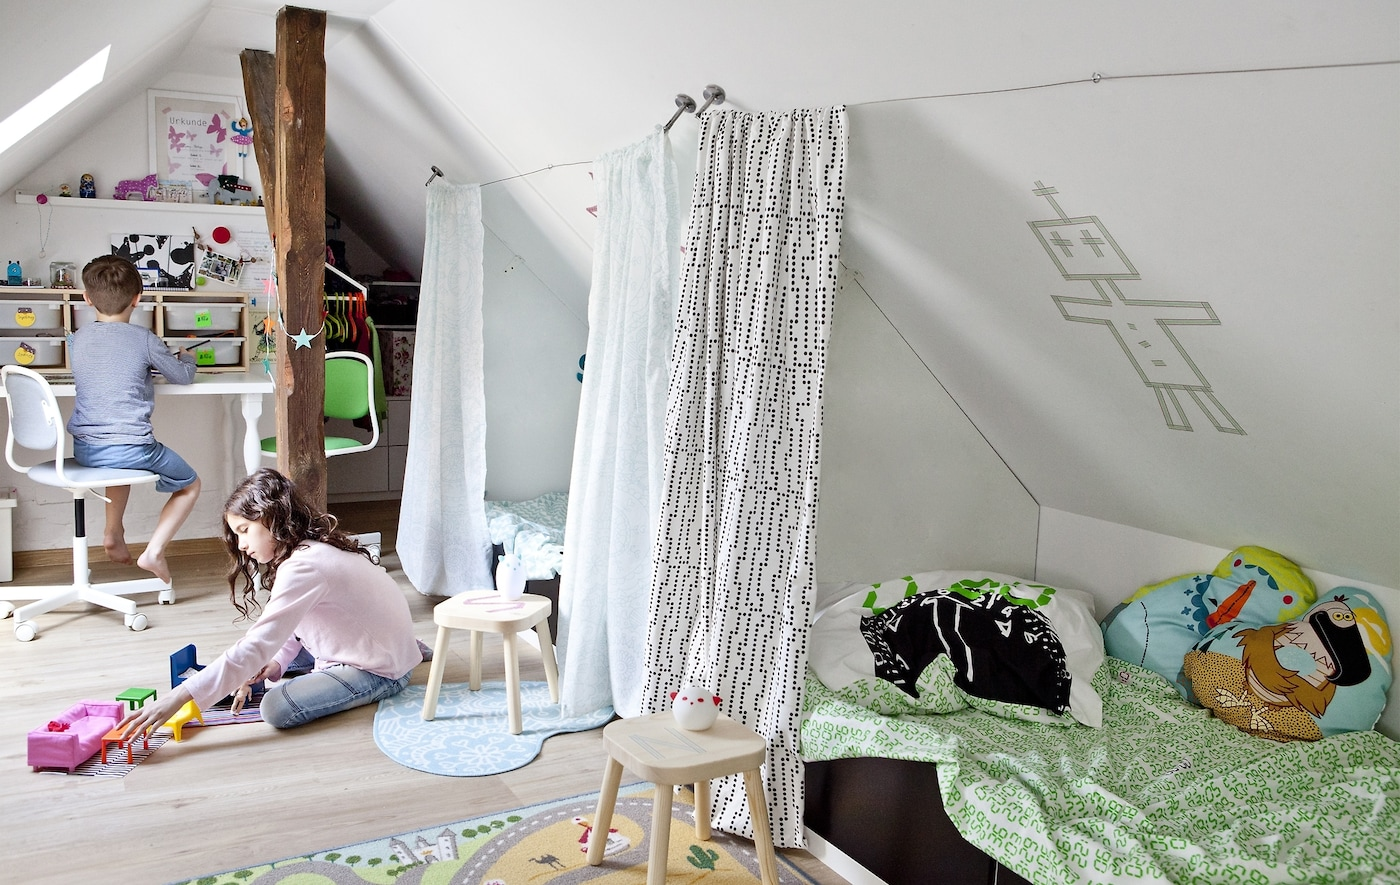 An attic bedroom with two beds and two children playing